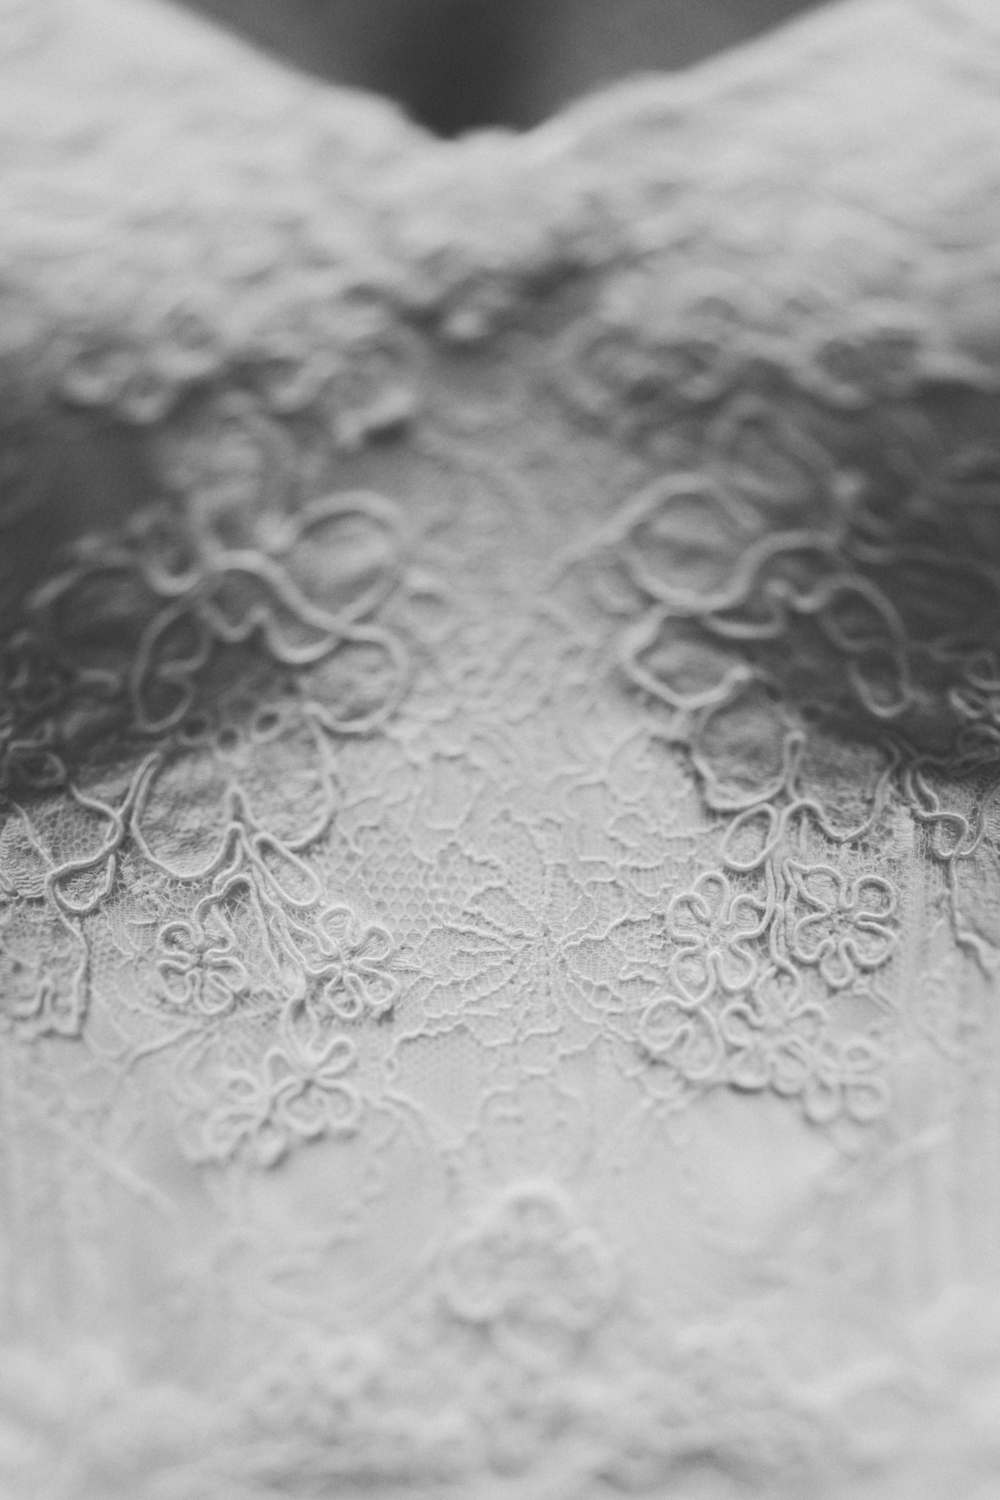 Lea-Ann used both Chantilly and Alençon lace to design the bodice of Brielle's wedding dress.